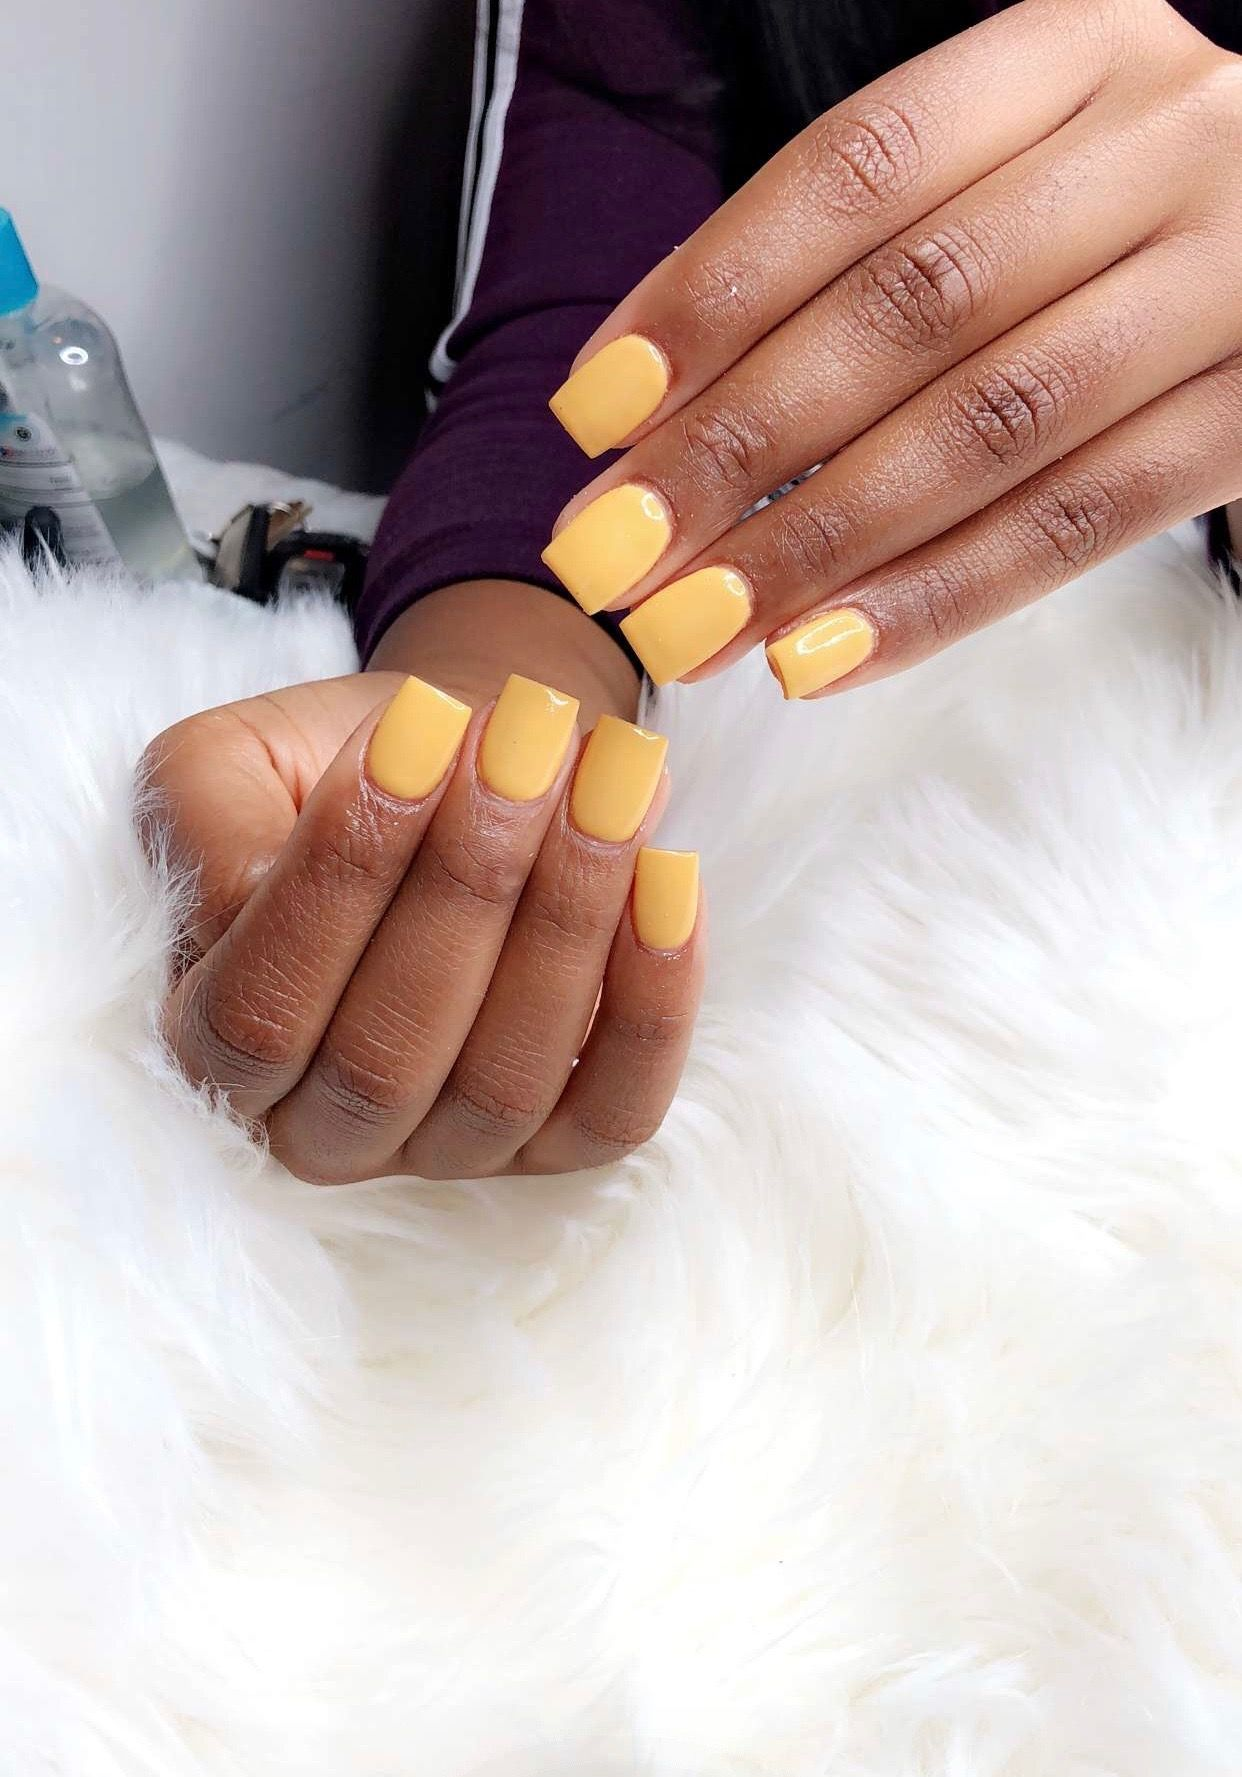 Follow Tropic M For More Short Square Acrylic Nails Short Acrylic Nails Square Acrylic Nails